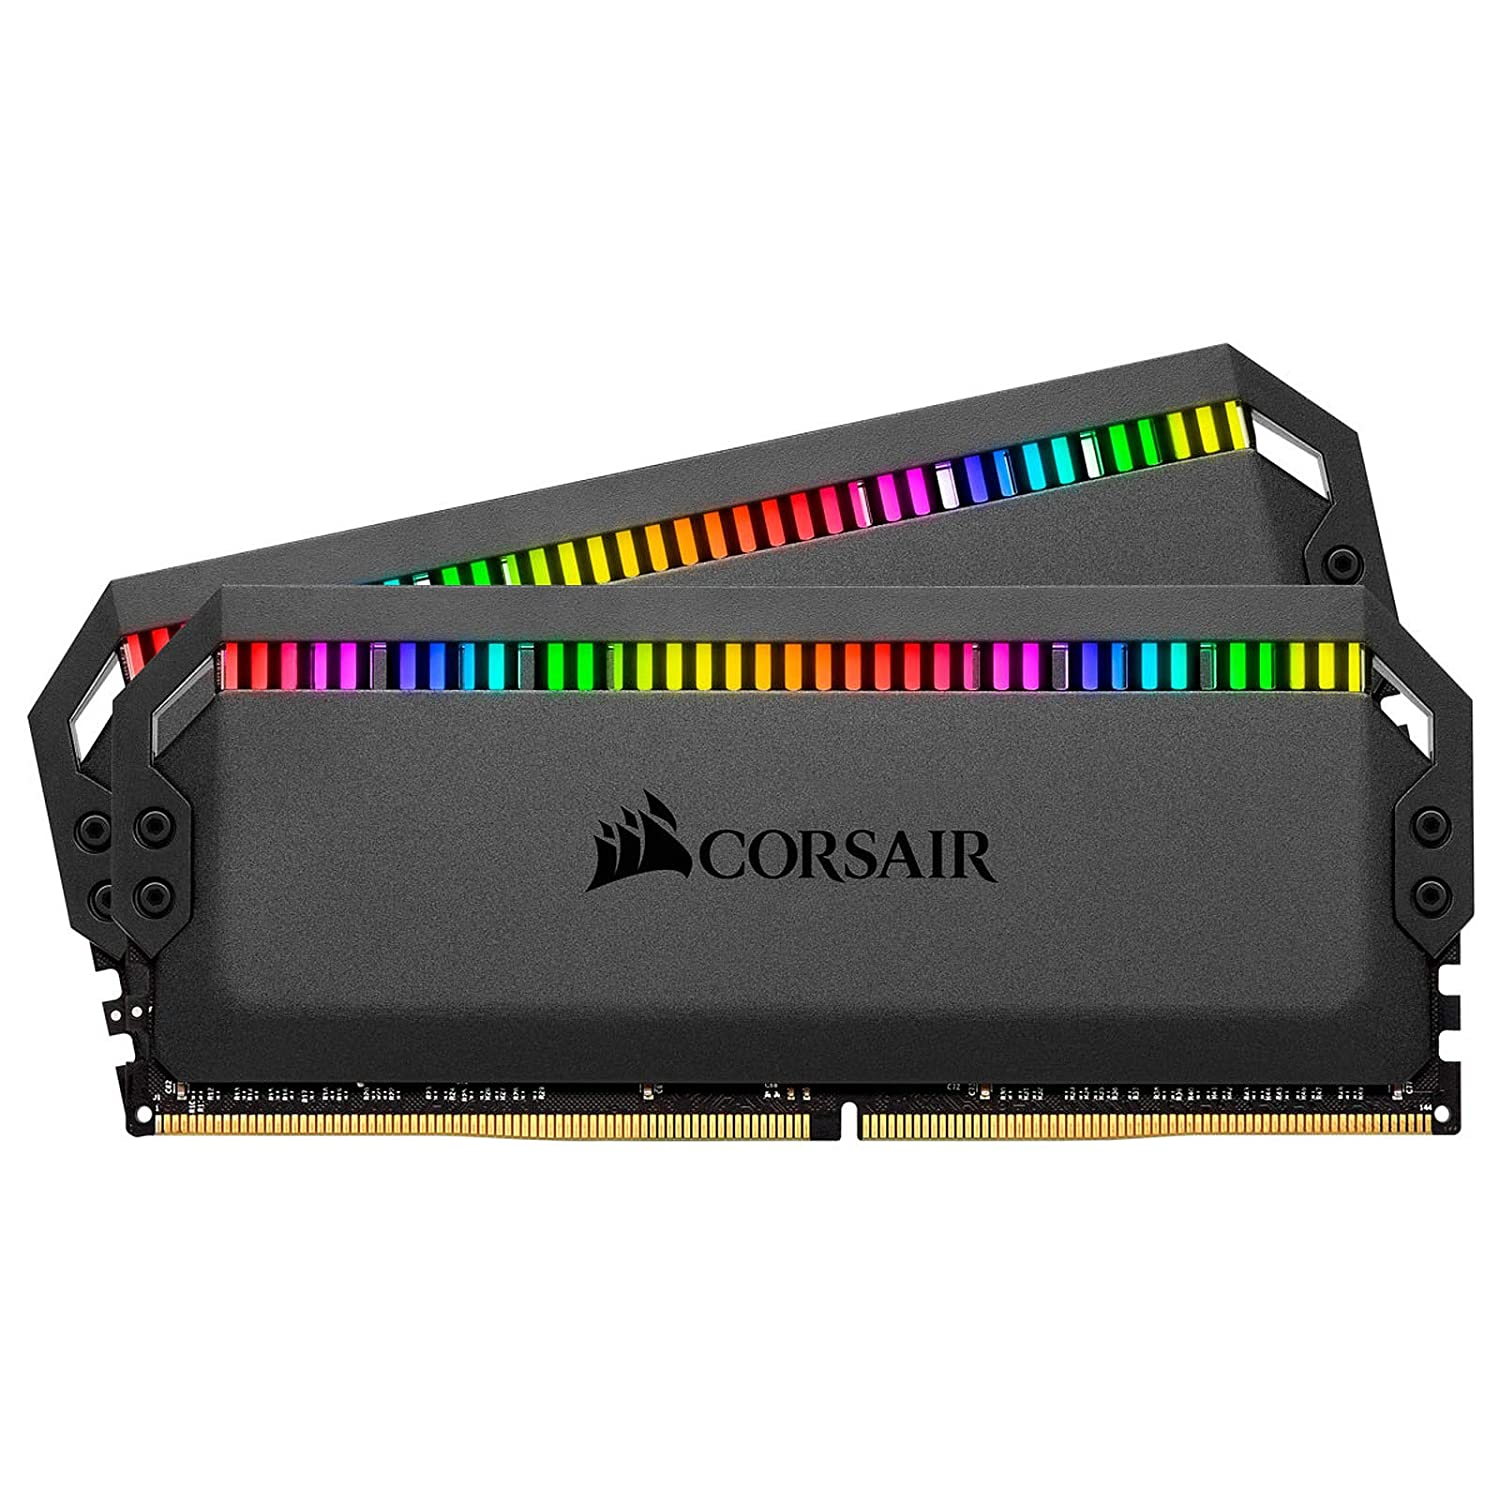 Corsair Dominator Platinum RGB 32GB (2x16GB) DDR4 3200 (PC4-25600) C14 1.35V - Black